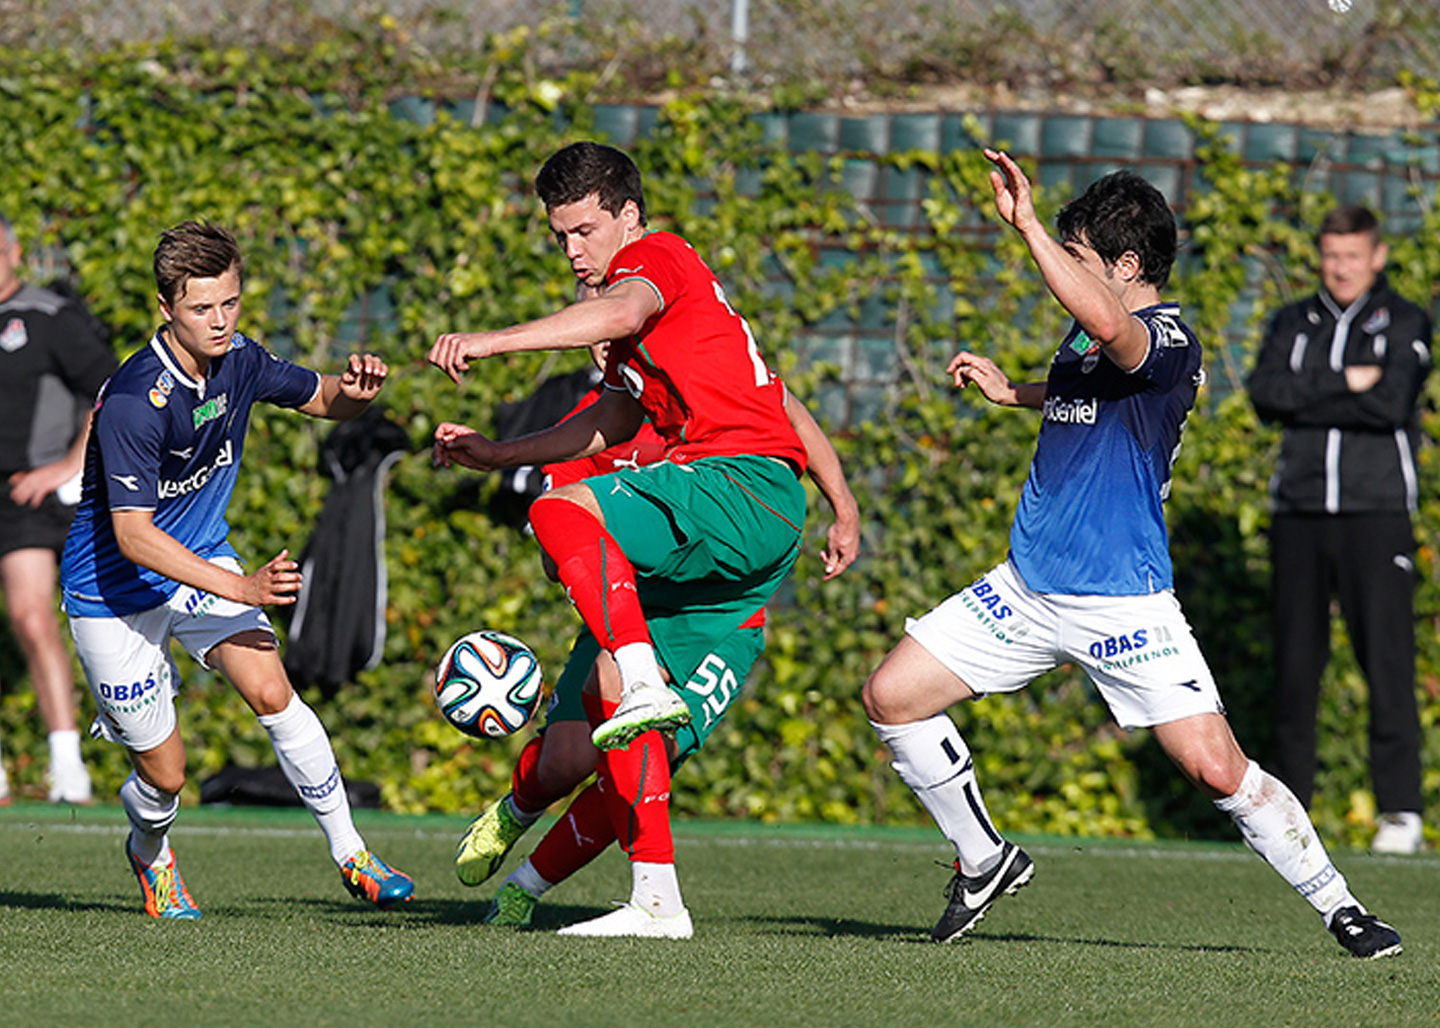 MARBELLA FOOTBALL CENTER OVER 56,000 M² NATURAL GRASS PITCHES